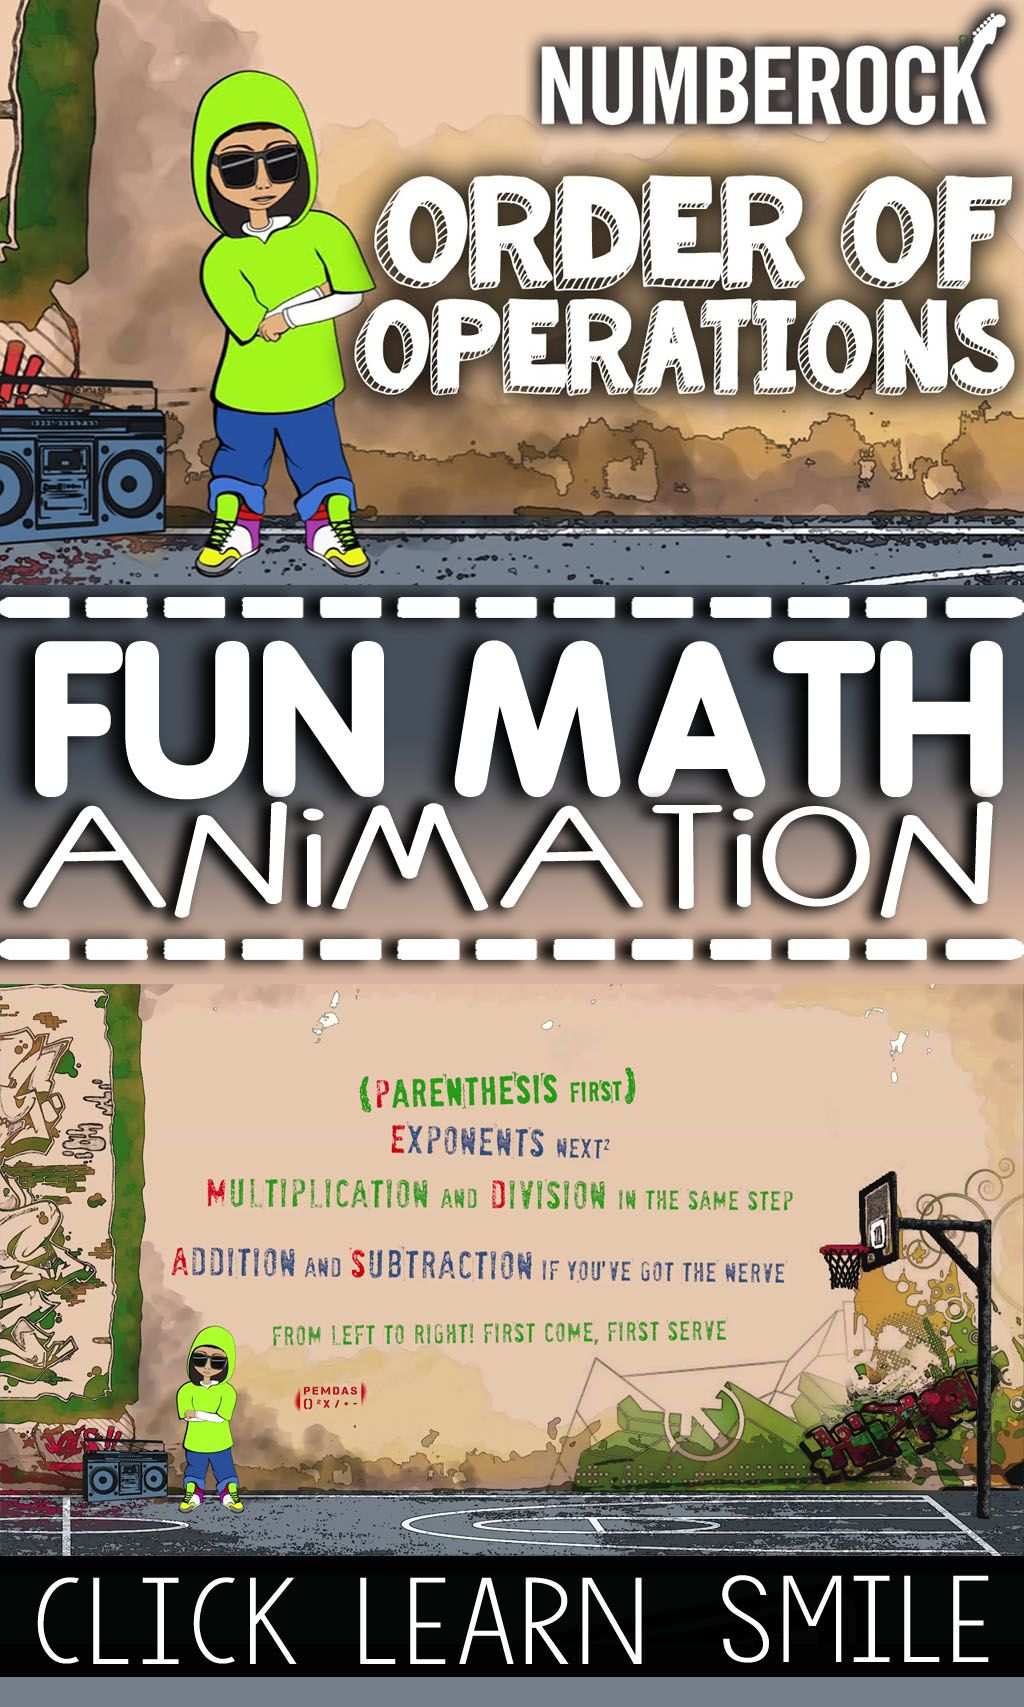 Order Of Operations Activities Pemdas Video Game Poster